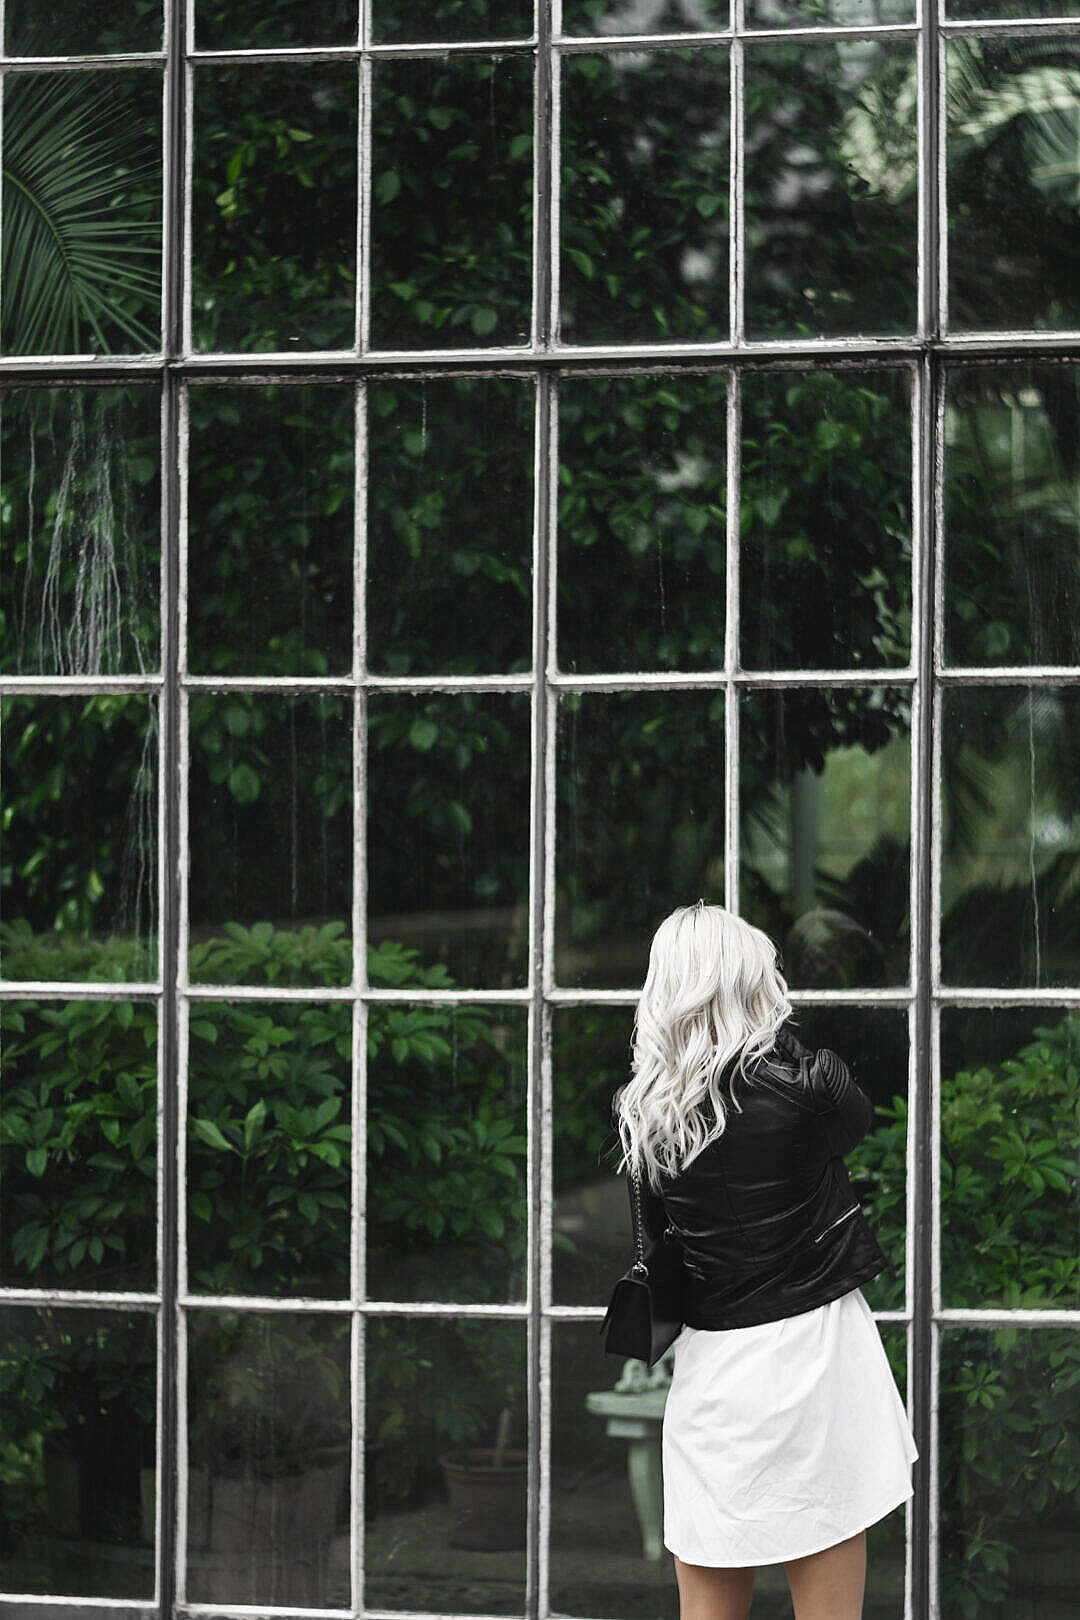 Download Woman Looking Through Old Windows of The Botanical Garden FREE Stock Photo